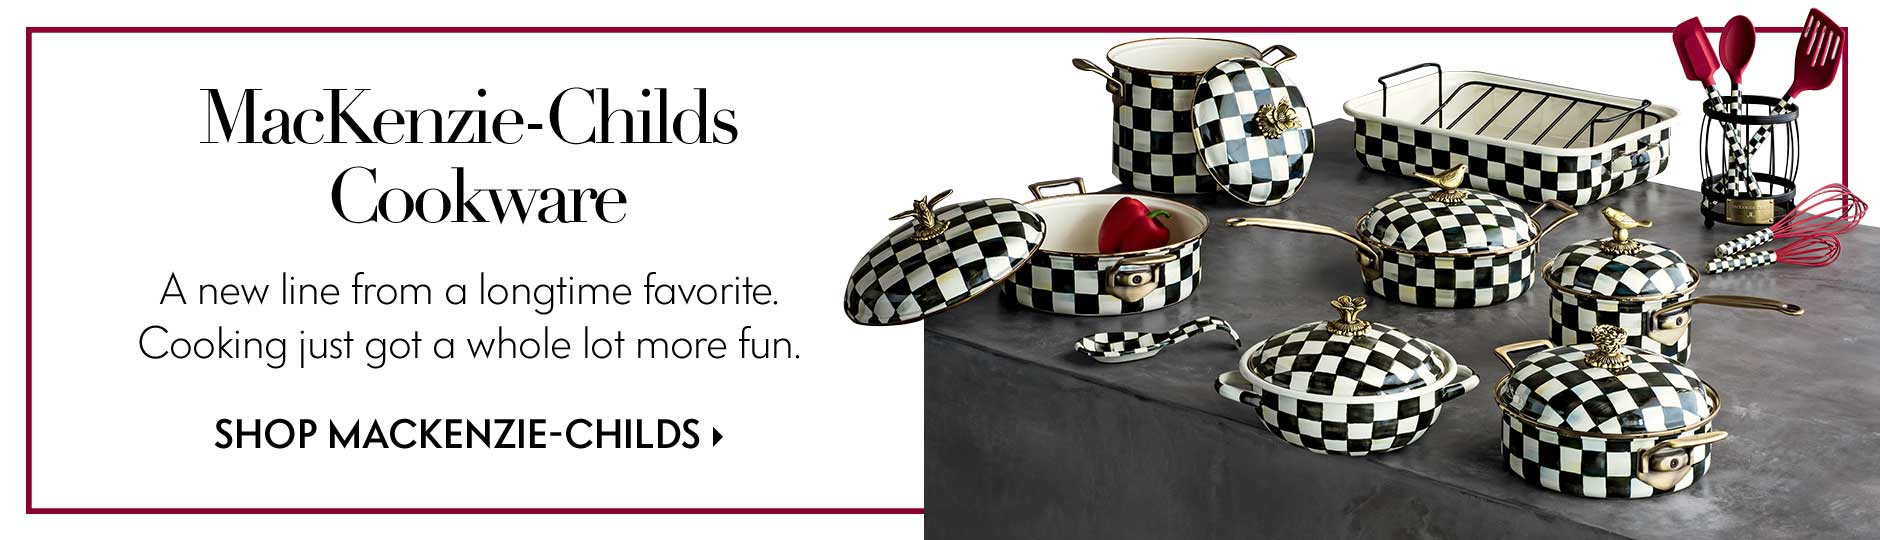 MacKenzie-Childs Cookware - A new line from a longtime favorite. Cooking just got a whole lot more fun.